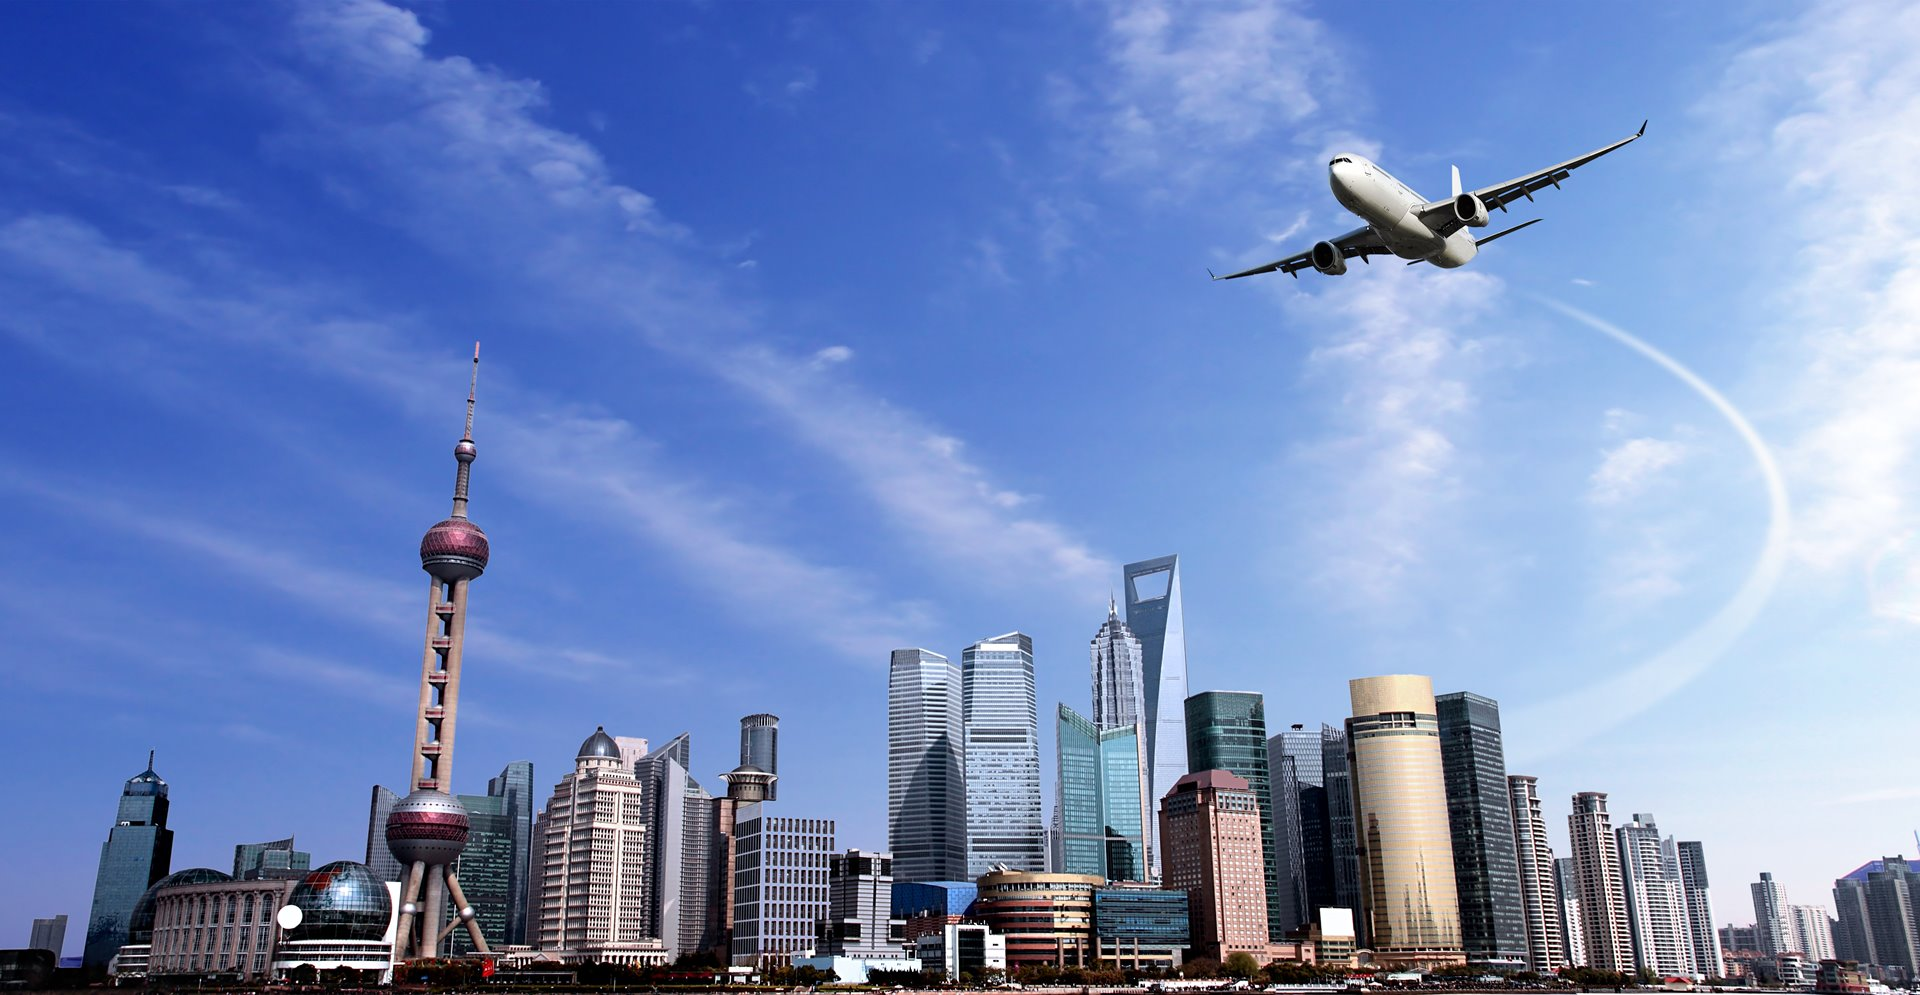 CHARTER FLIGHTS BETWEEN CHINA AND PITTSBURGH INTERNATIONAL AIRPORT WILL BE LAUNCHED IN AUGUST 2018